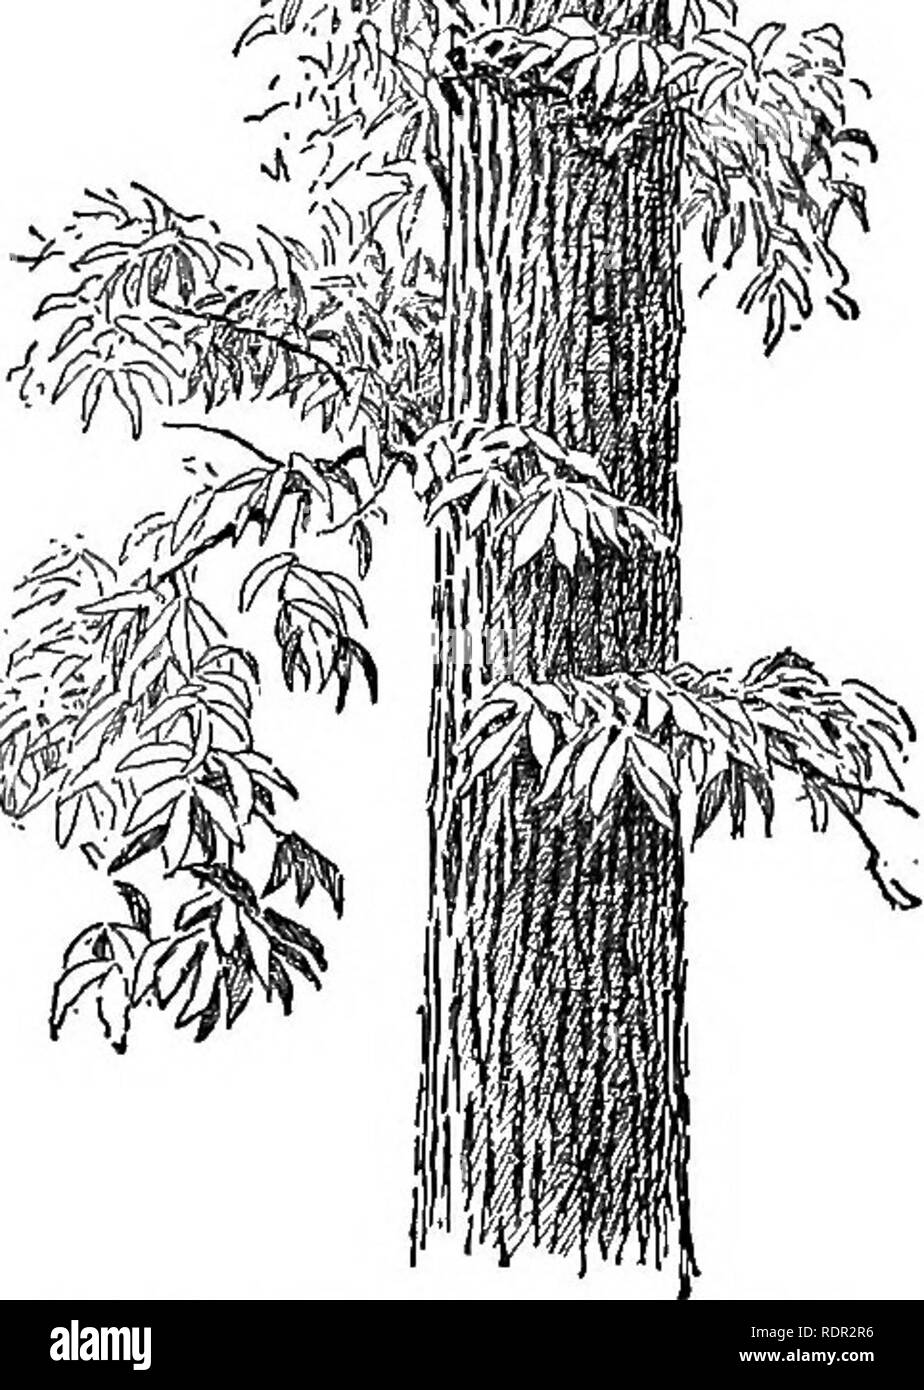 . Cyclopedia of farm crops, a popular survey of crops and crop-making methods in the United States and Canada;. Farm produce; Agriculture. TANNING MATERIALS TANNING MATERIALS 625 outer bark. Other pine barks contain 2 to 7 per cent of tannin. Sitka spruce (Picea Sitchensis) is native along the coast from Alaska to northern California. The bark contains about 17 per cent of tannin. Norway spruce (Picea excelsa). The bark contains 7 to 13 per cent of catechol tannin and much fermentable sugar. It is used largely in Austria and is the source of the so-called larch bark extract. White spruce (P. a - Stock Image